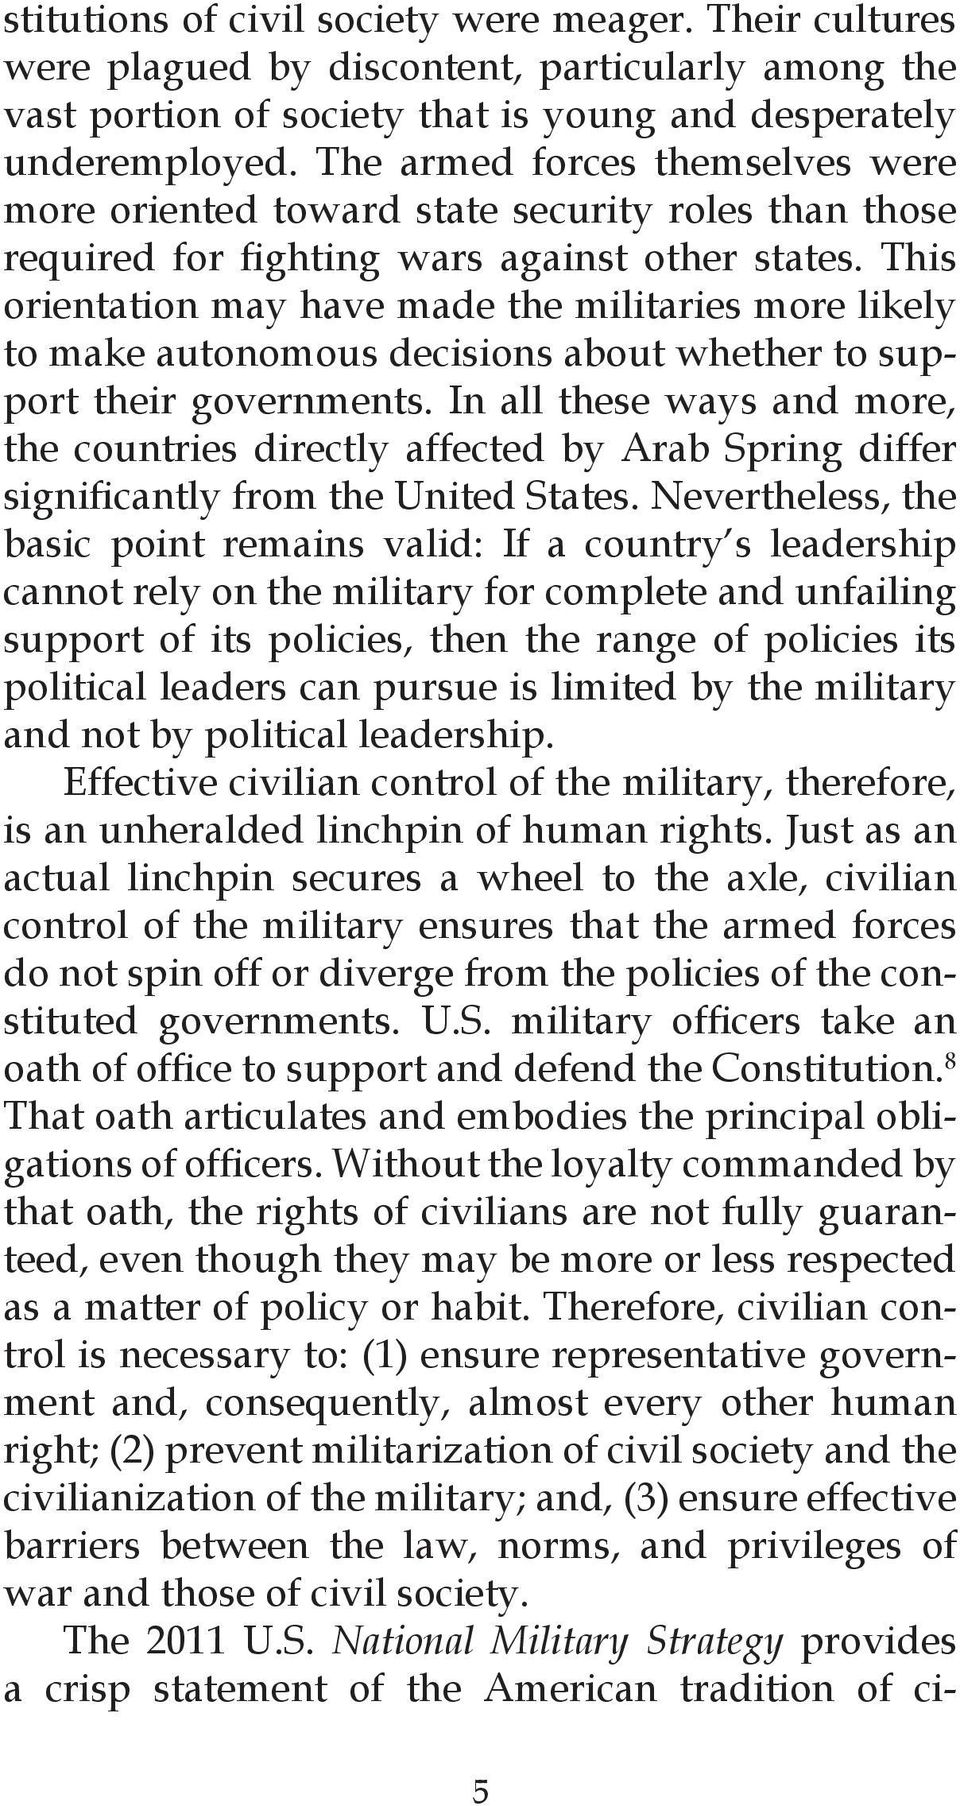 This orientation may have made the militaries more likely to make autonomous decisions about whether to support their governments.